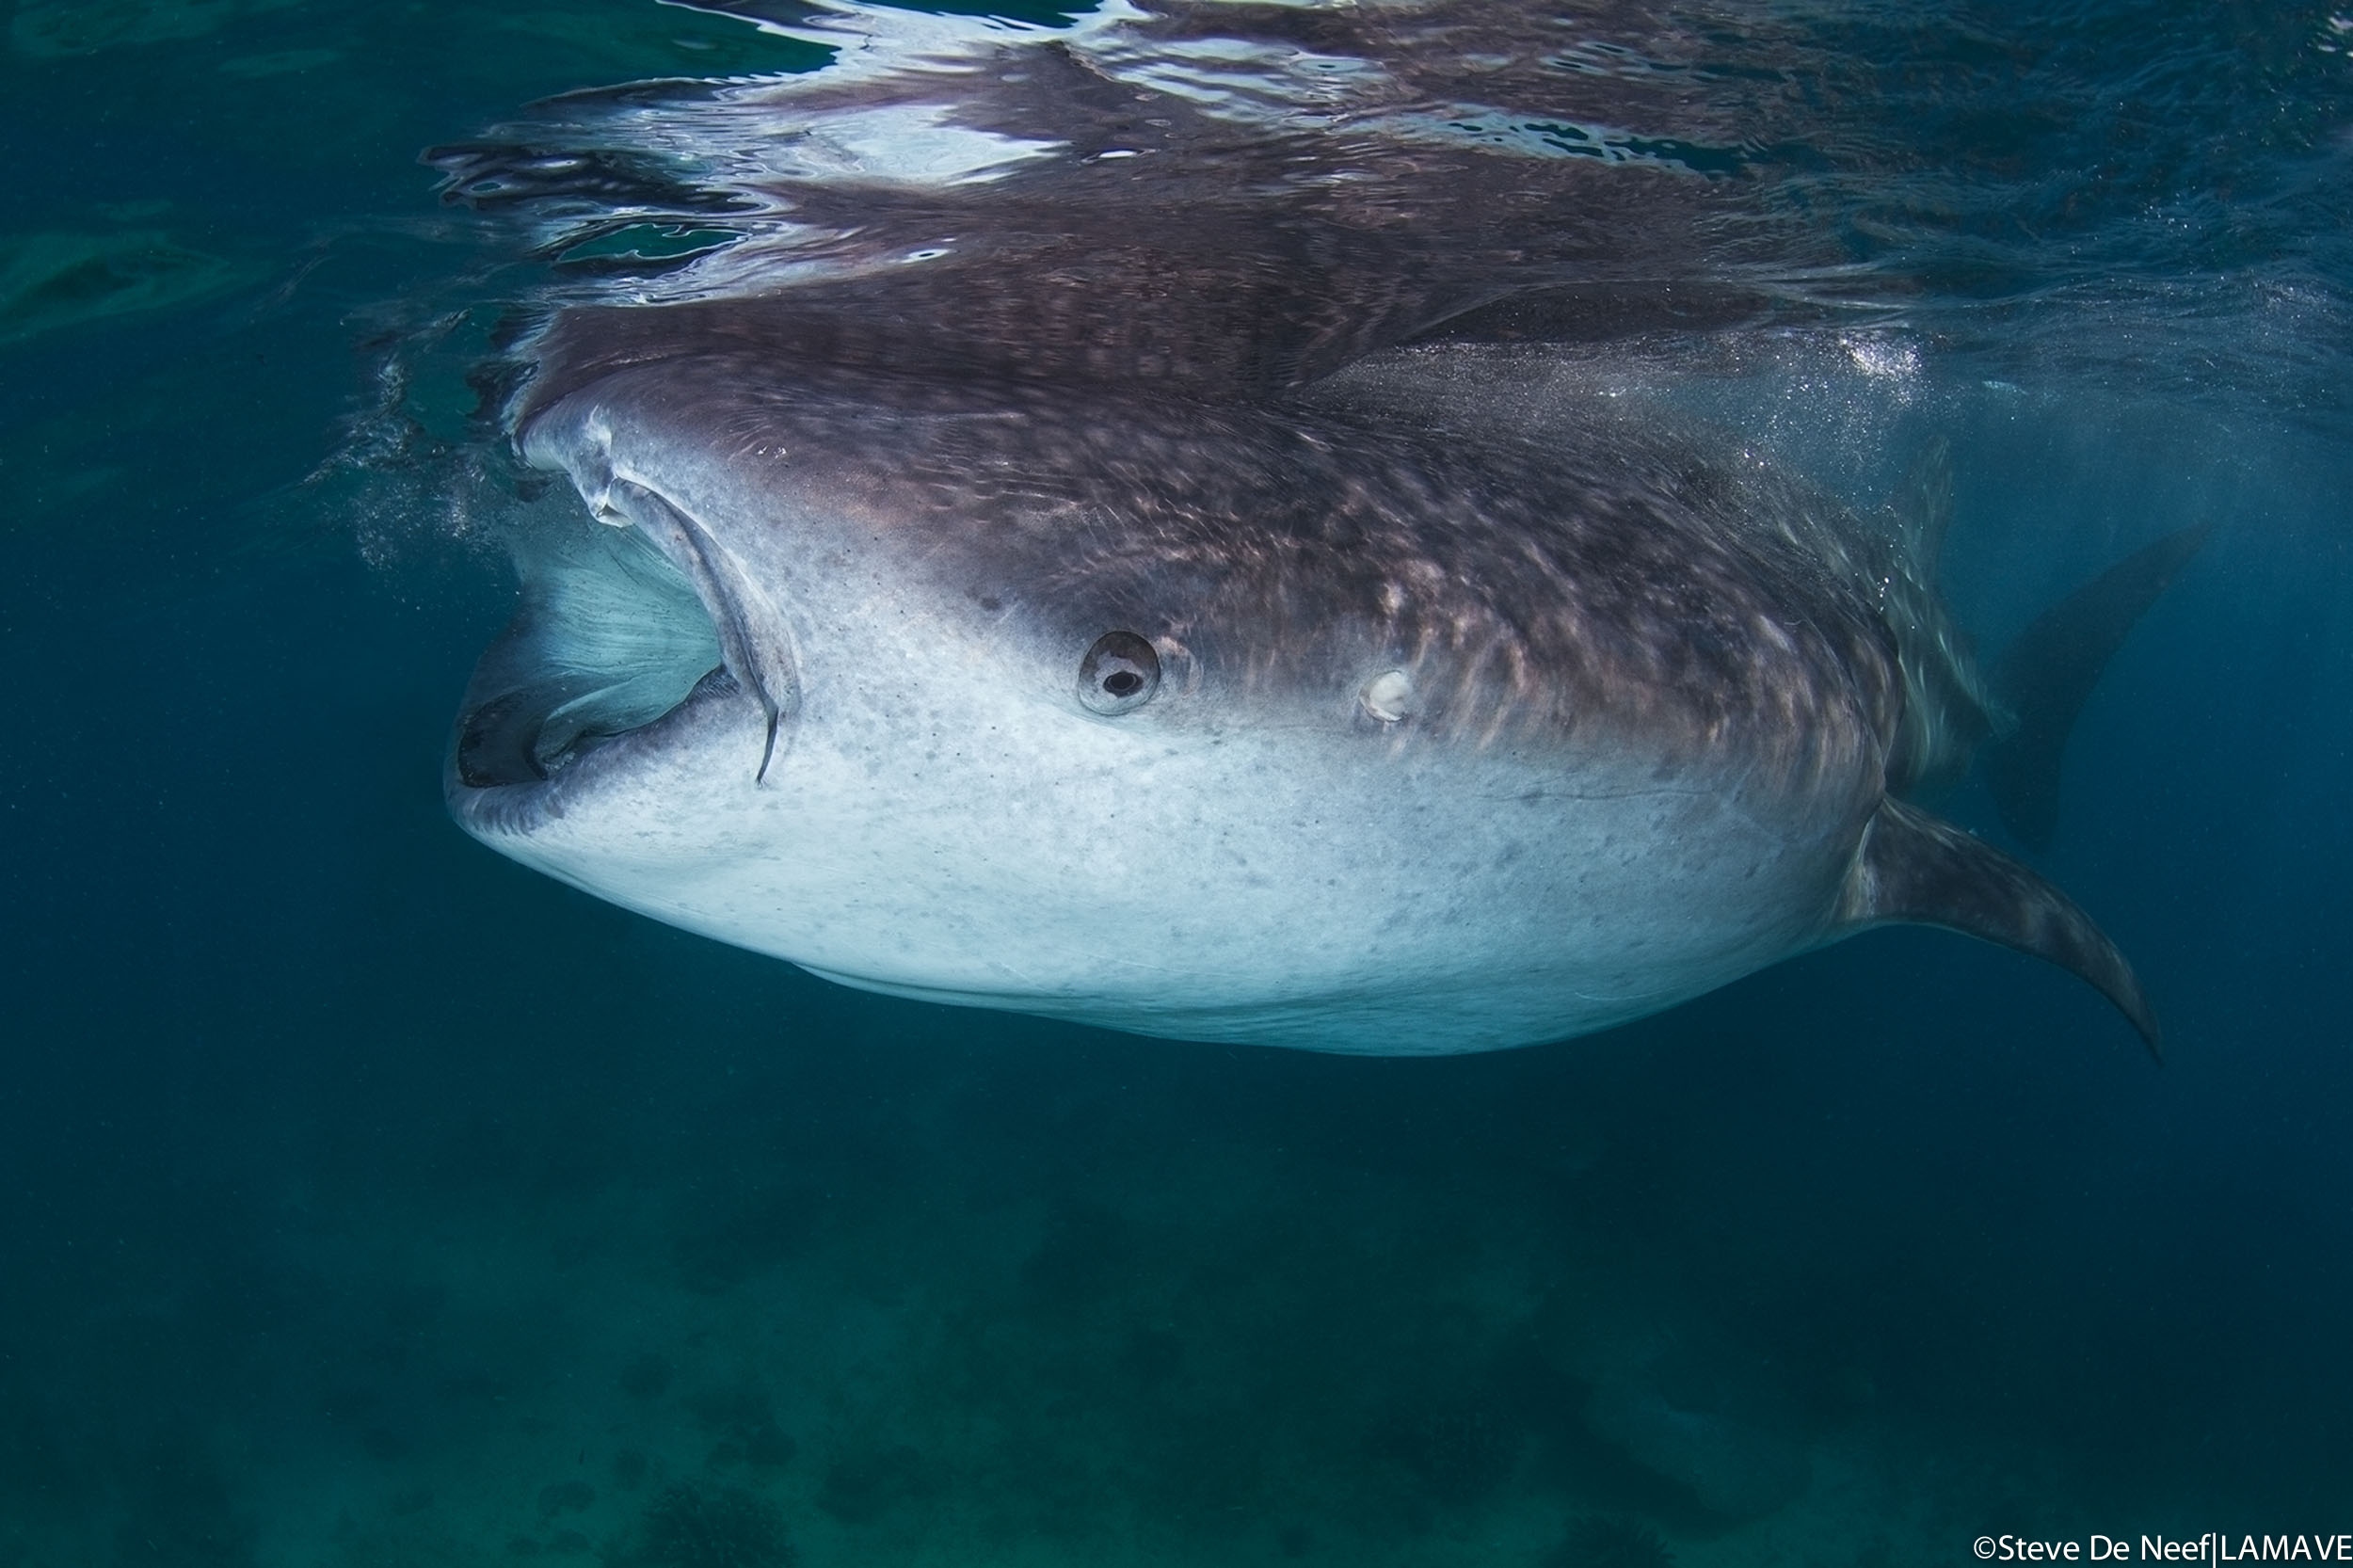 whale-shark-lamave-research-philippines-steve-de-neeef.jpg